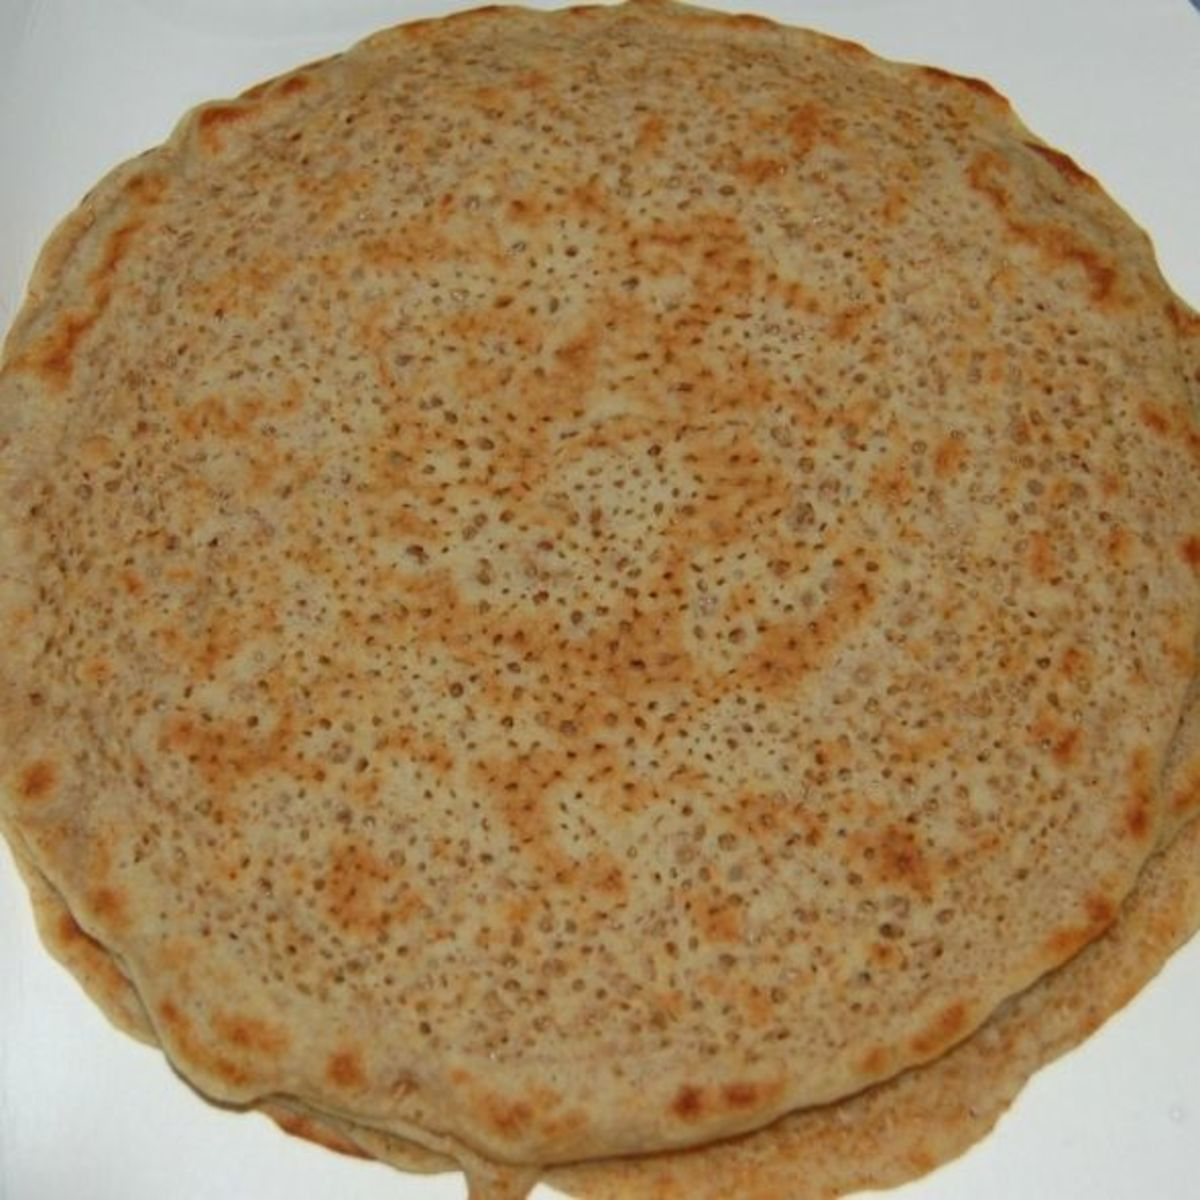 The North Staffordshire Oatcake